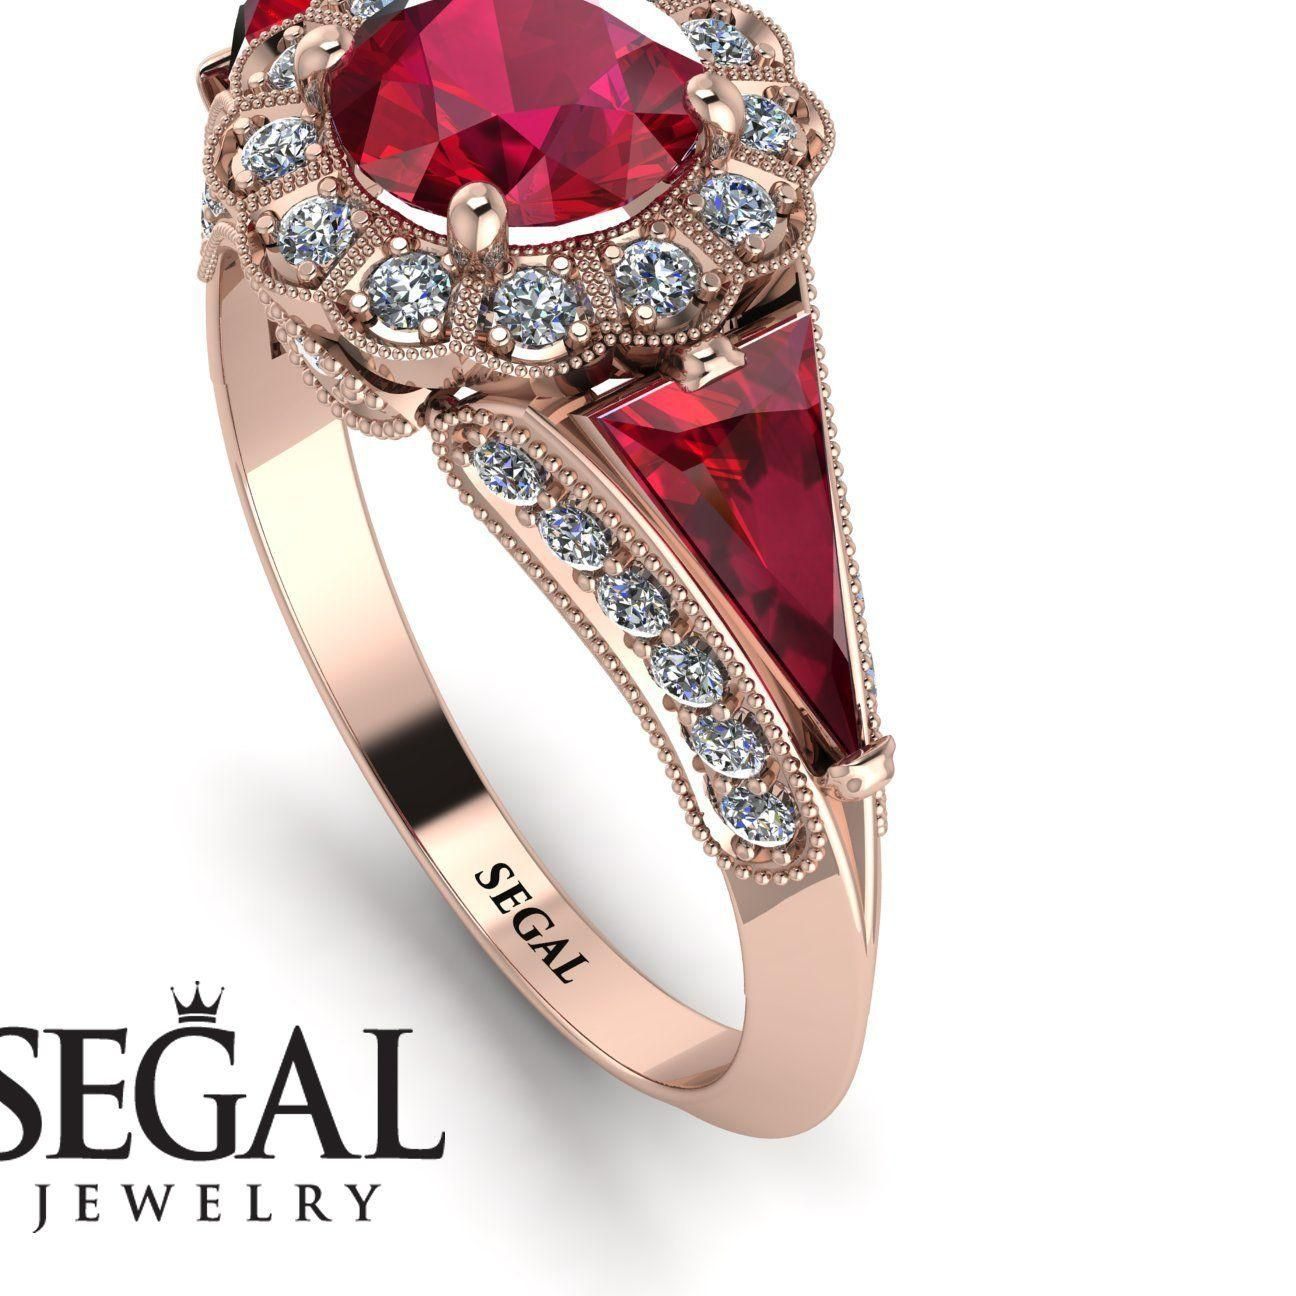 10 Simple Women Ruby Rings Projects Suggest Wearing The Ruby And People Takes Up The Suggestion Accor In 2020 Ruby Ring Designs Expensive Diamond Rings Ring Designs